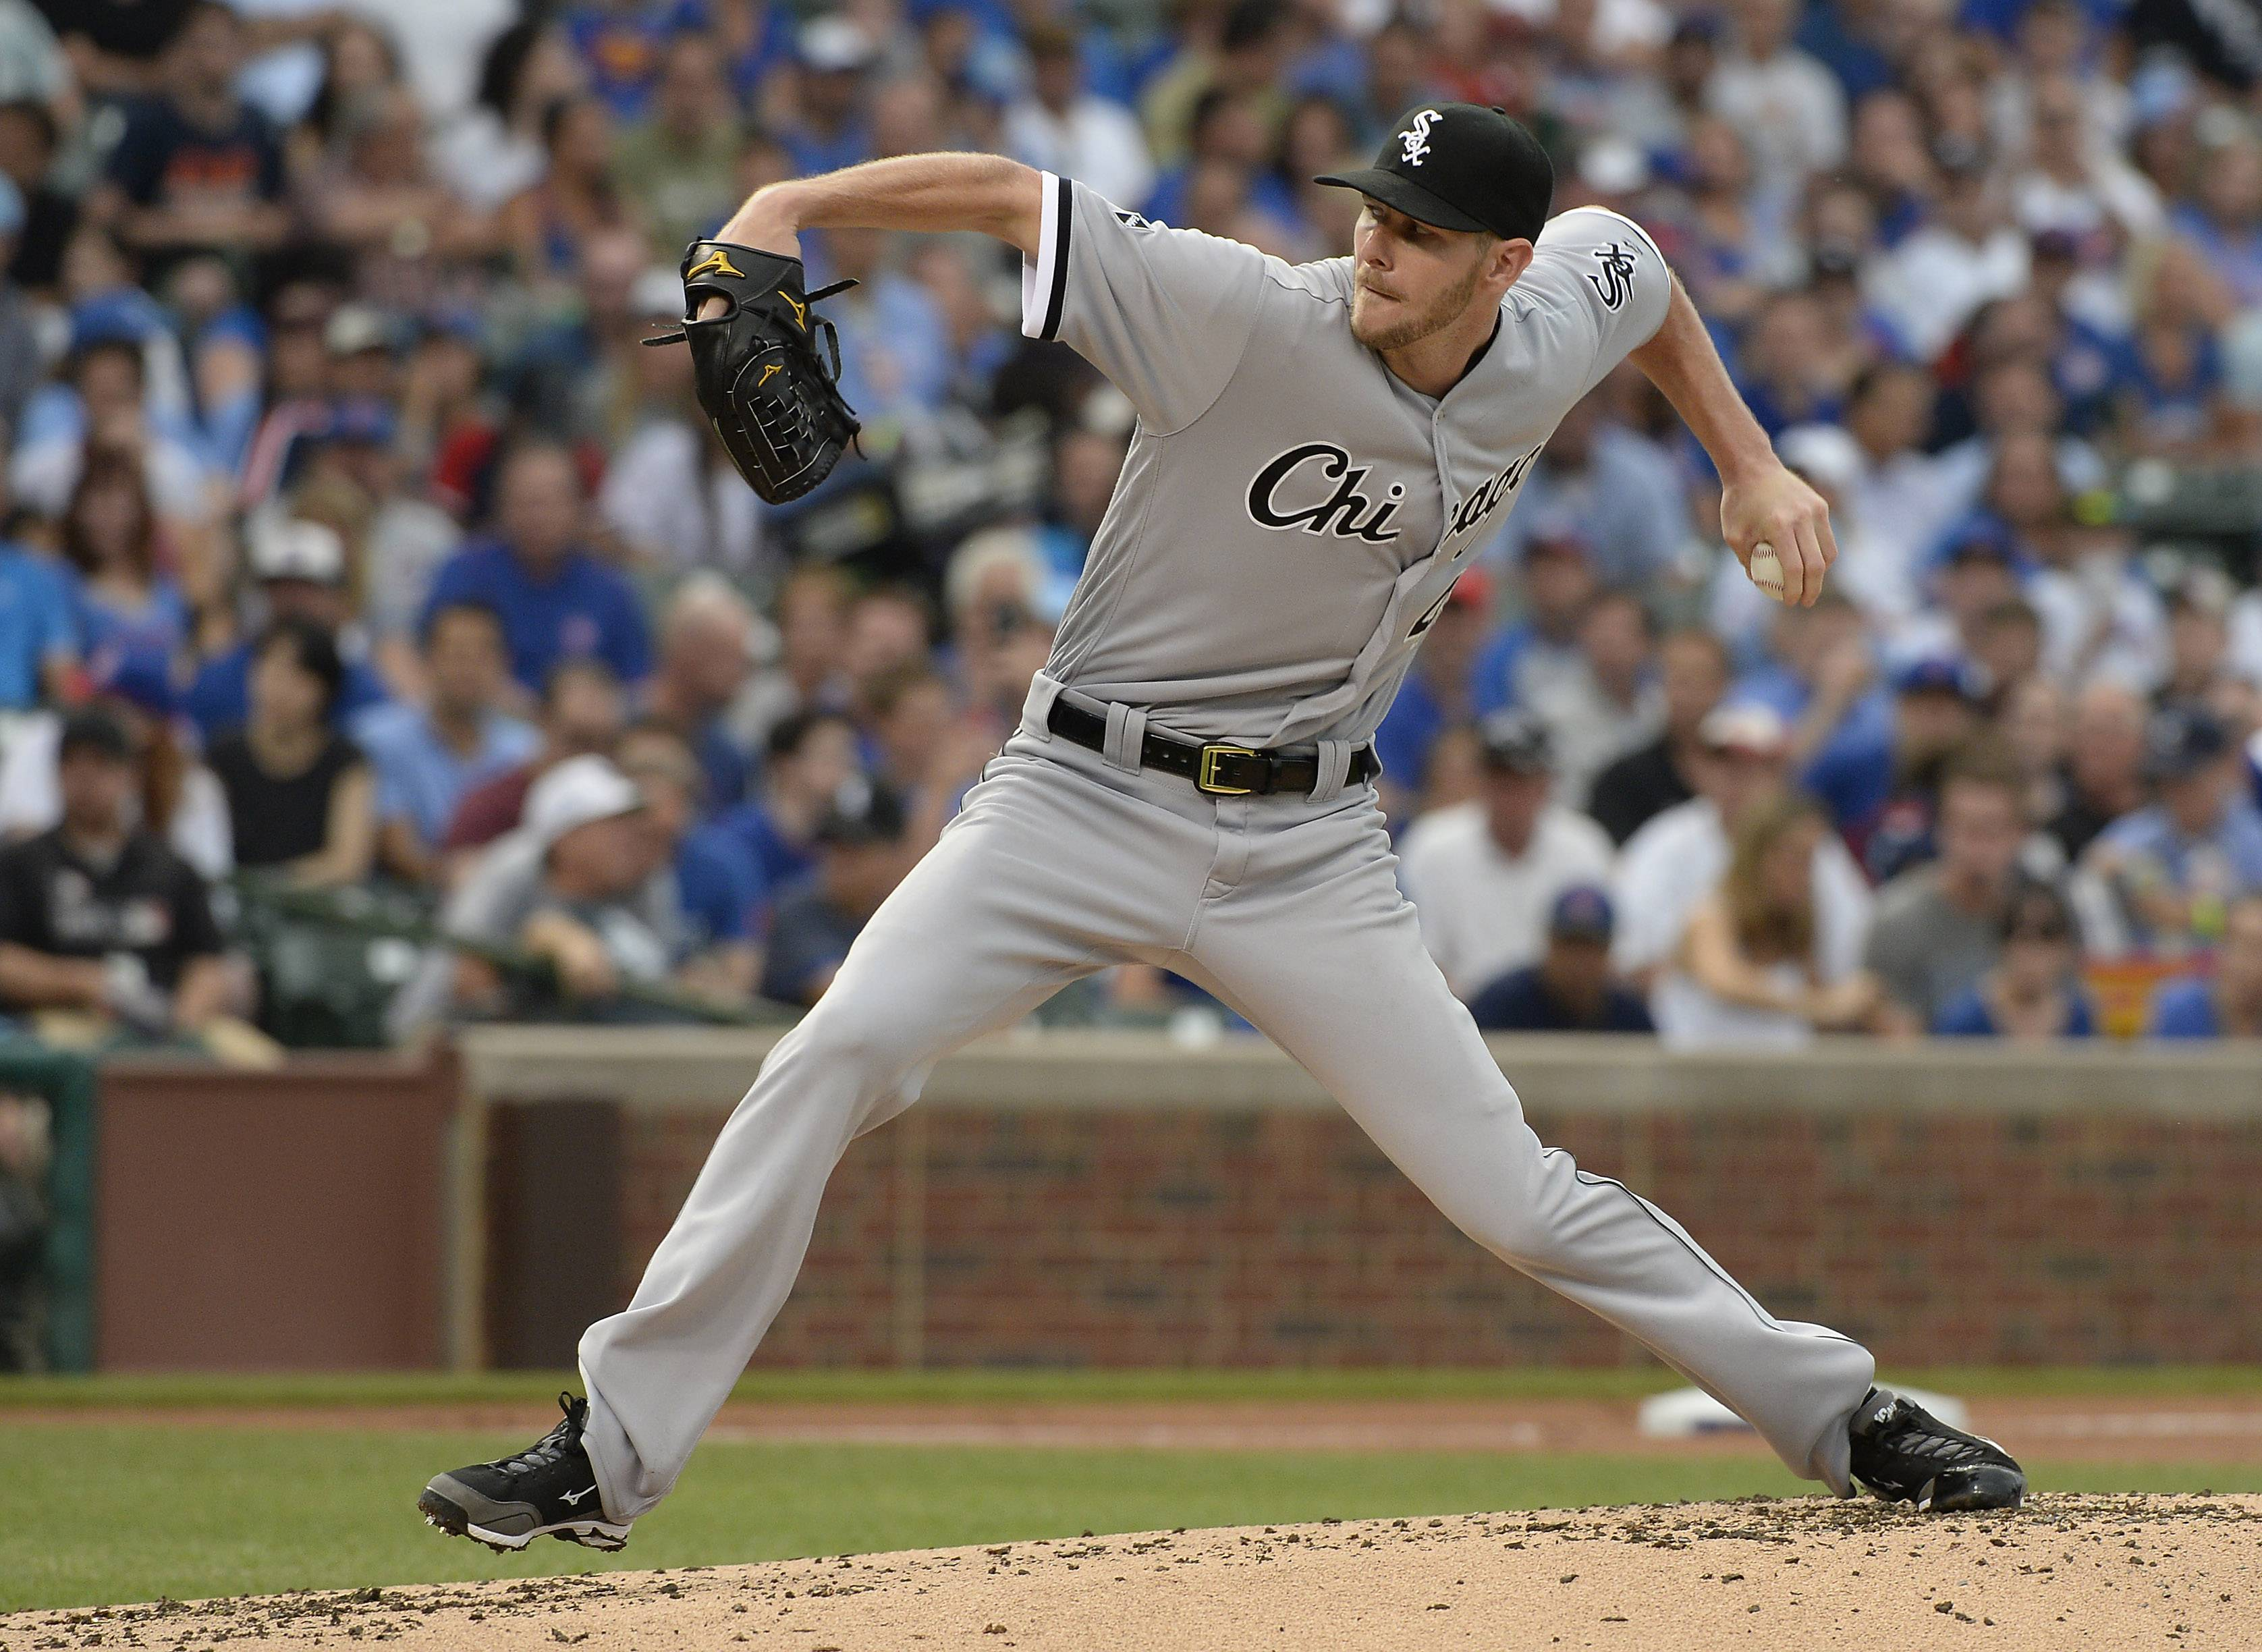 Mark Welsh/mwelsh@dailyherald.comWhite Sox pitcher Chris Sale fires his pitch in the first inning against the Chicago Cubs at Wrigley Field on Thursday.